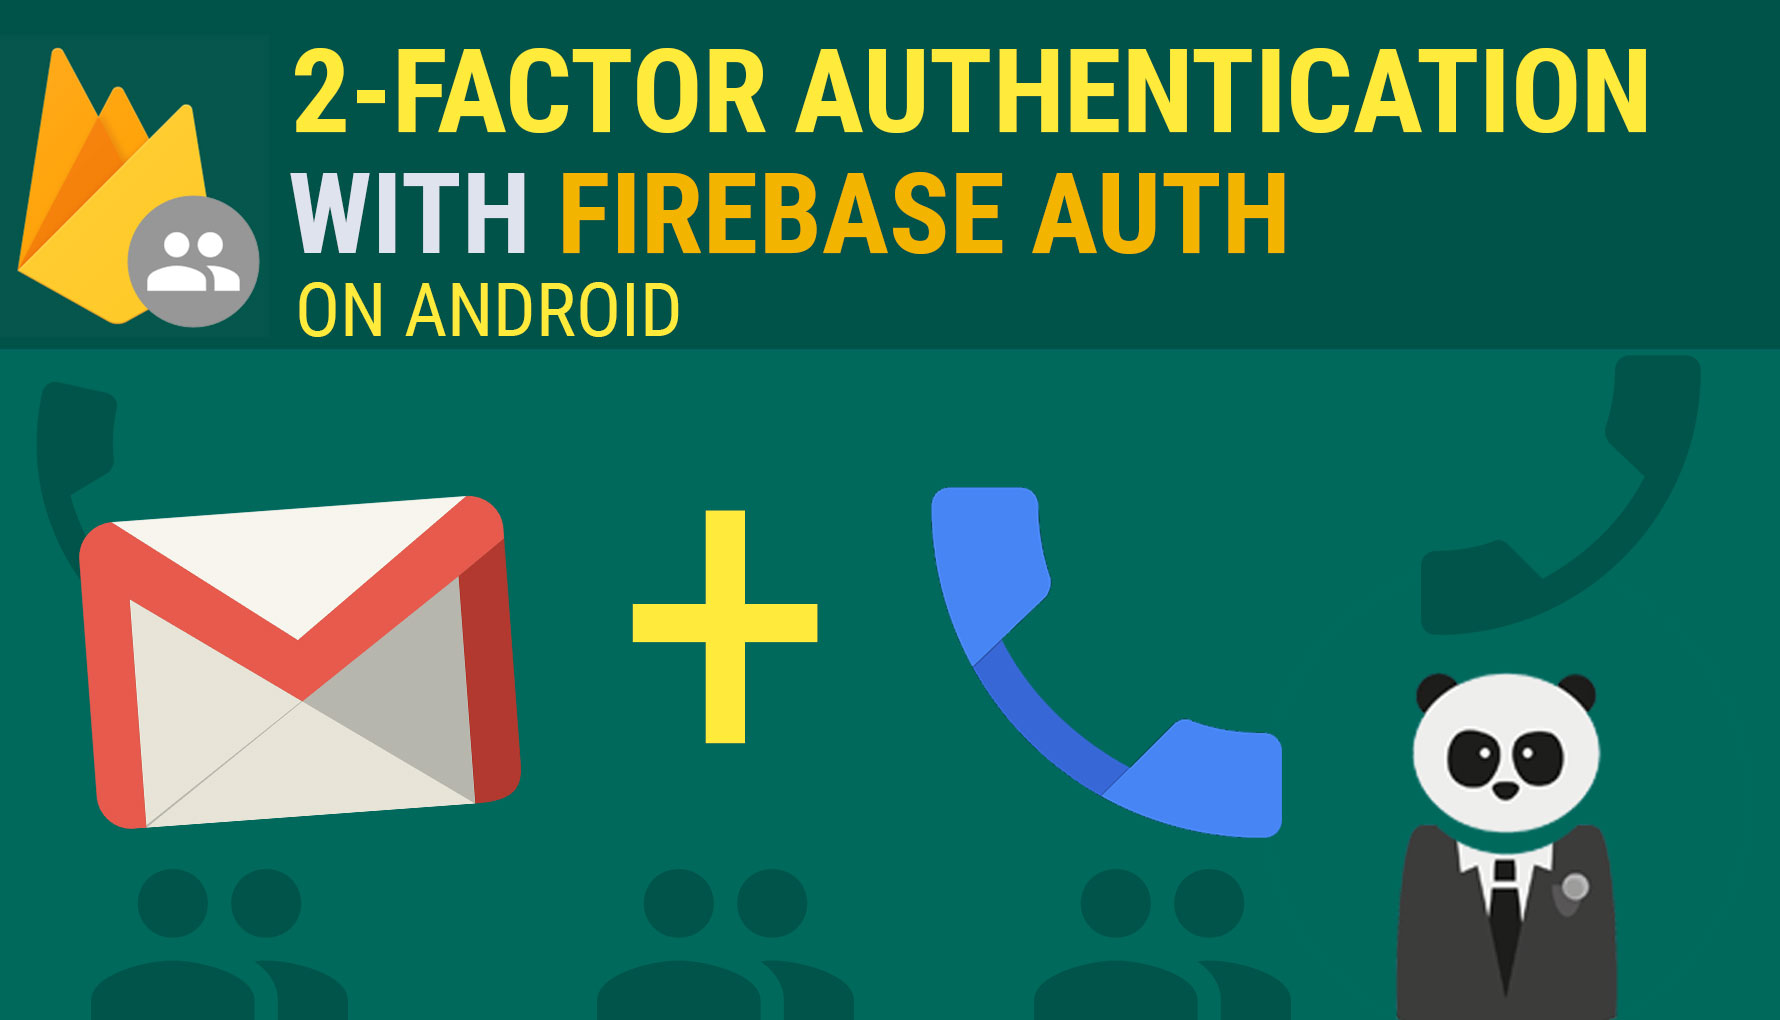 2-Factor Authentication (Email/Password & Phone with Firebase Authentication on Android